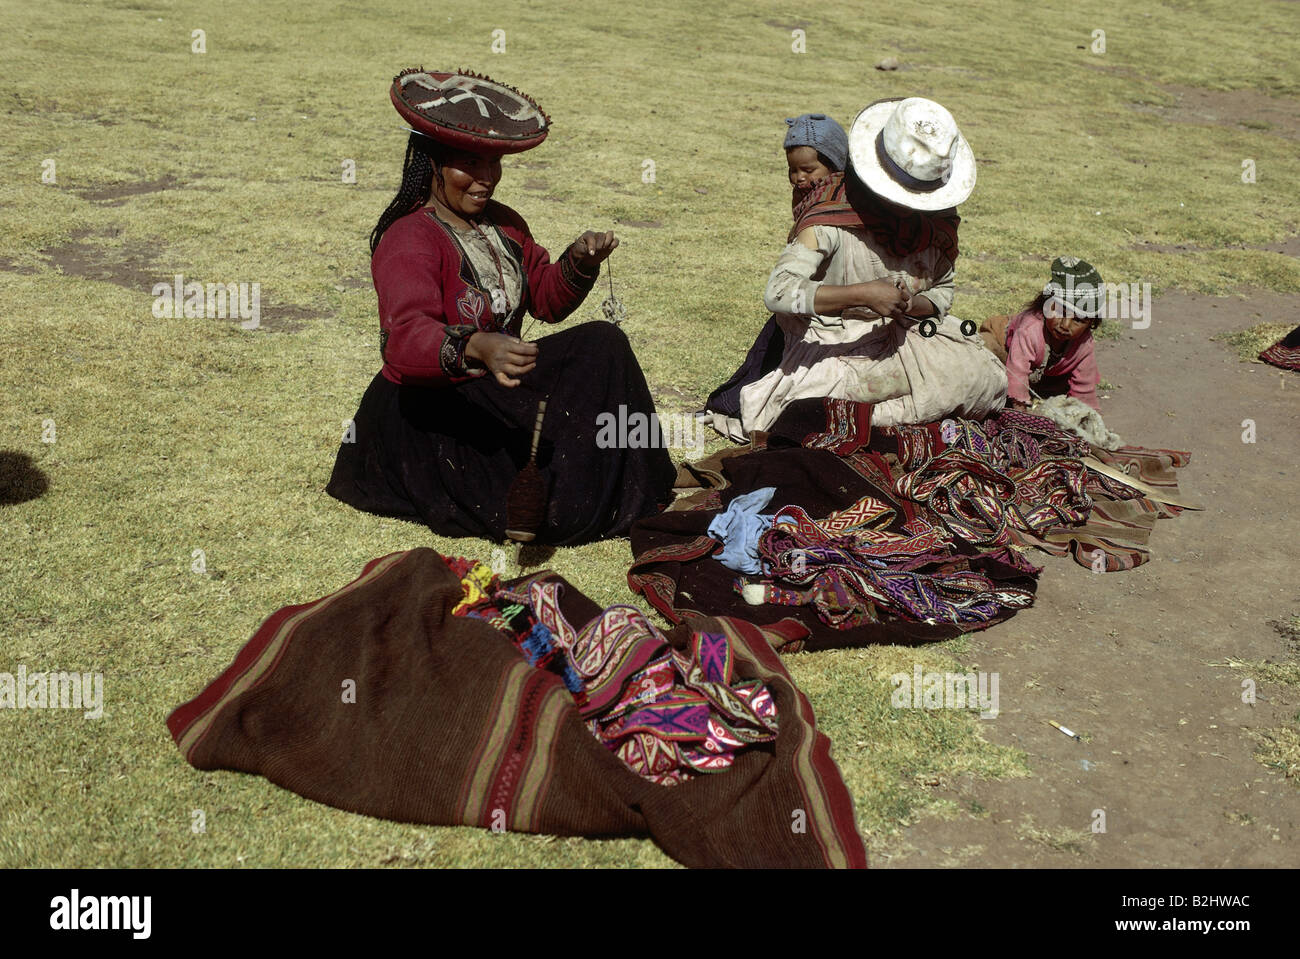 people, mothers with children, Peru, two women and infants, Titicacasee, ethnic, ethnology, South America, child, - Stock Image